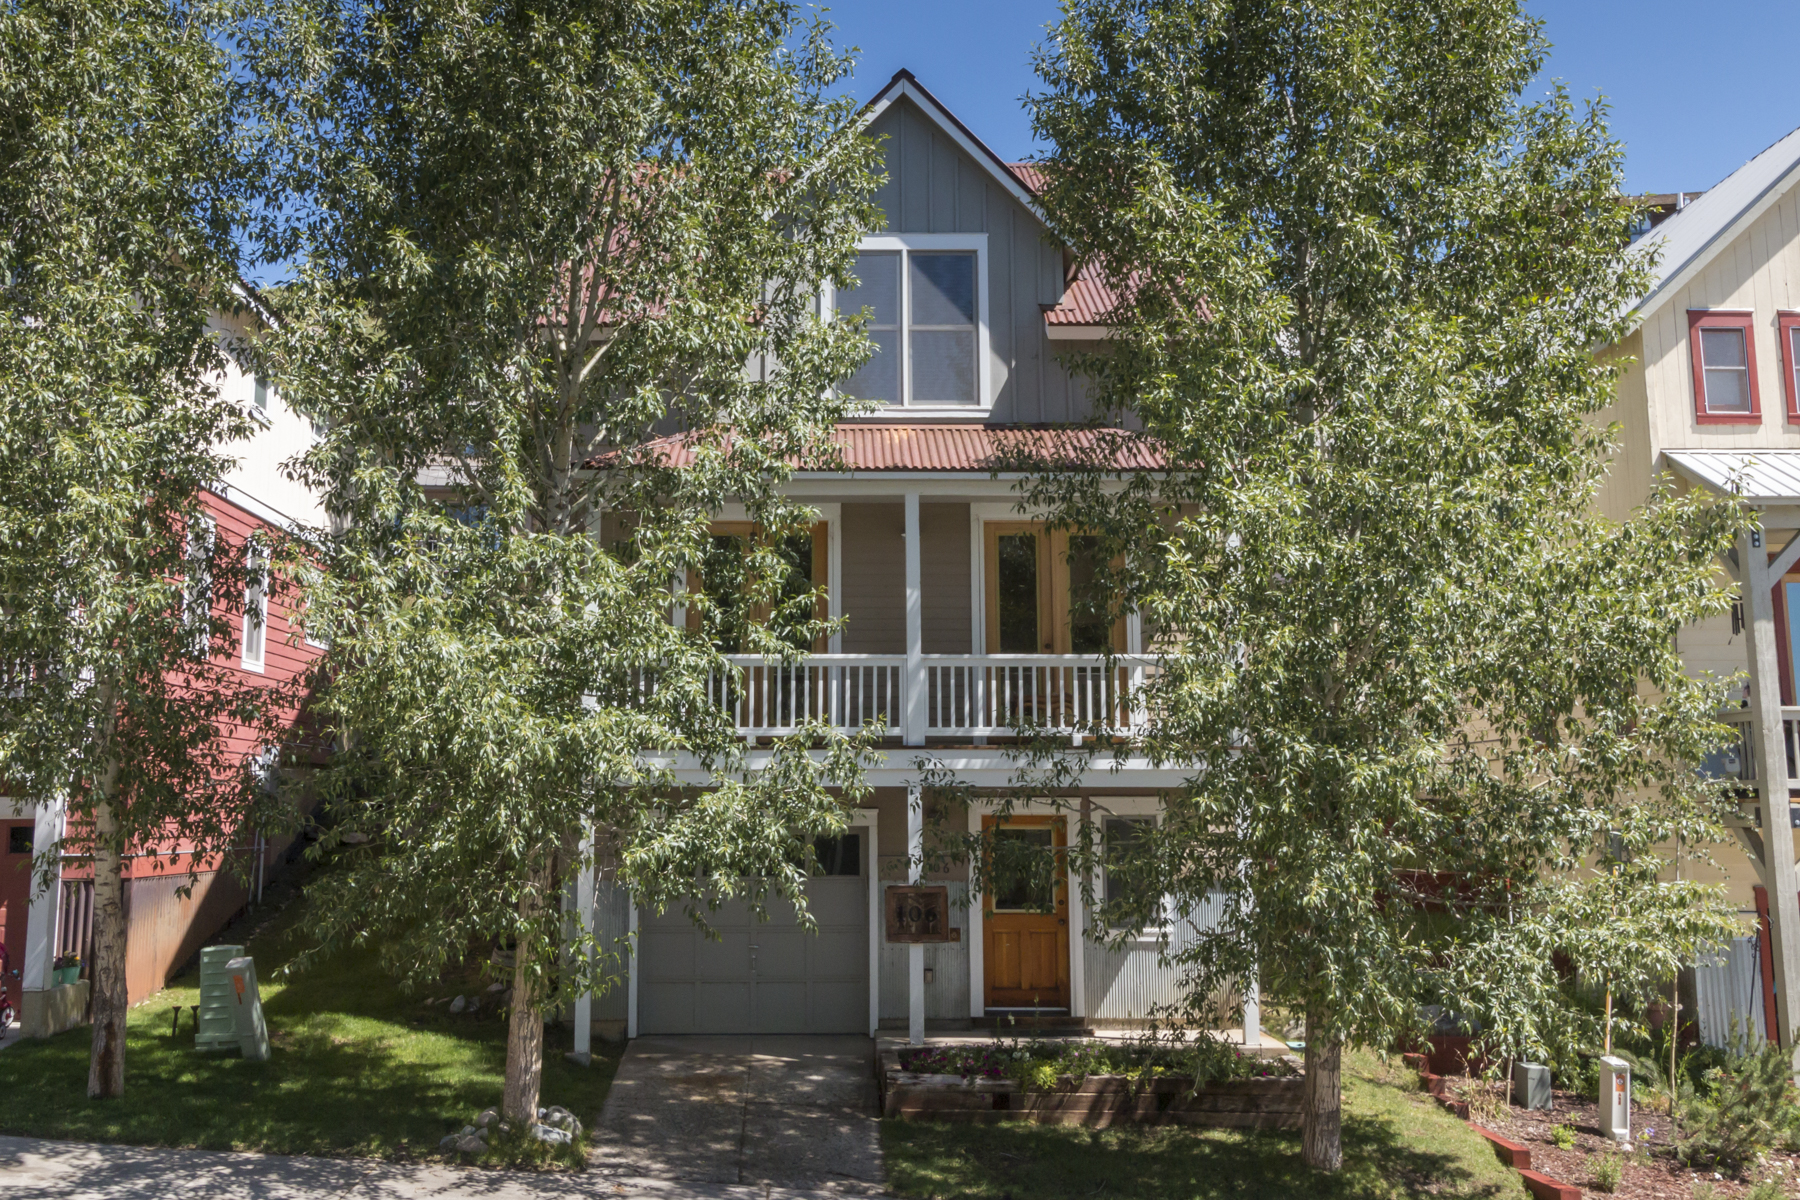 Single Family Home for Active at Bright Pitchfork Home 106 Big Sky Drive Mount Crested Butte, Colorado 81225 United States